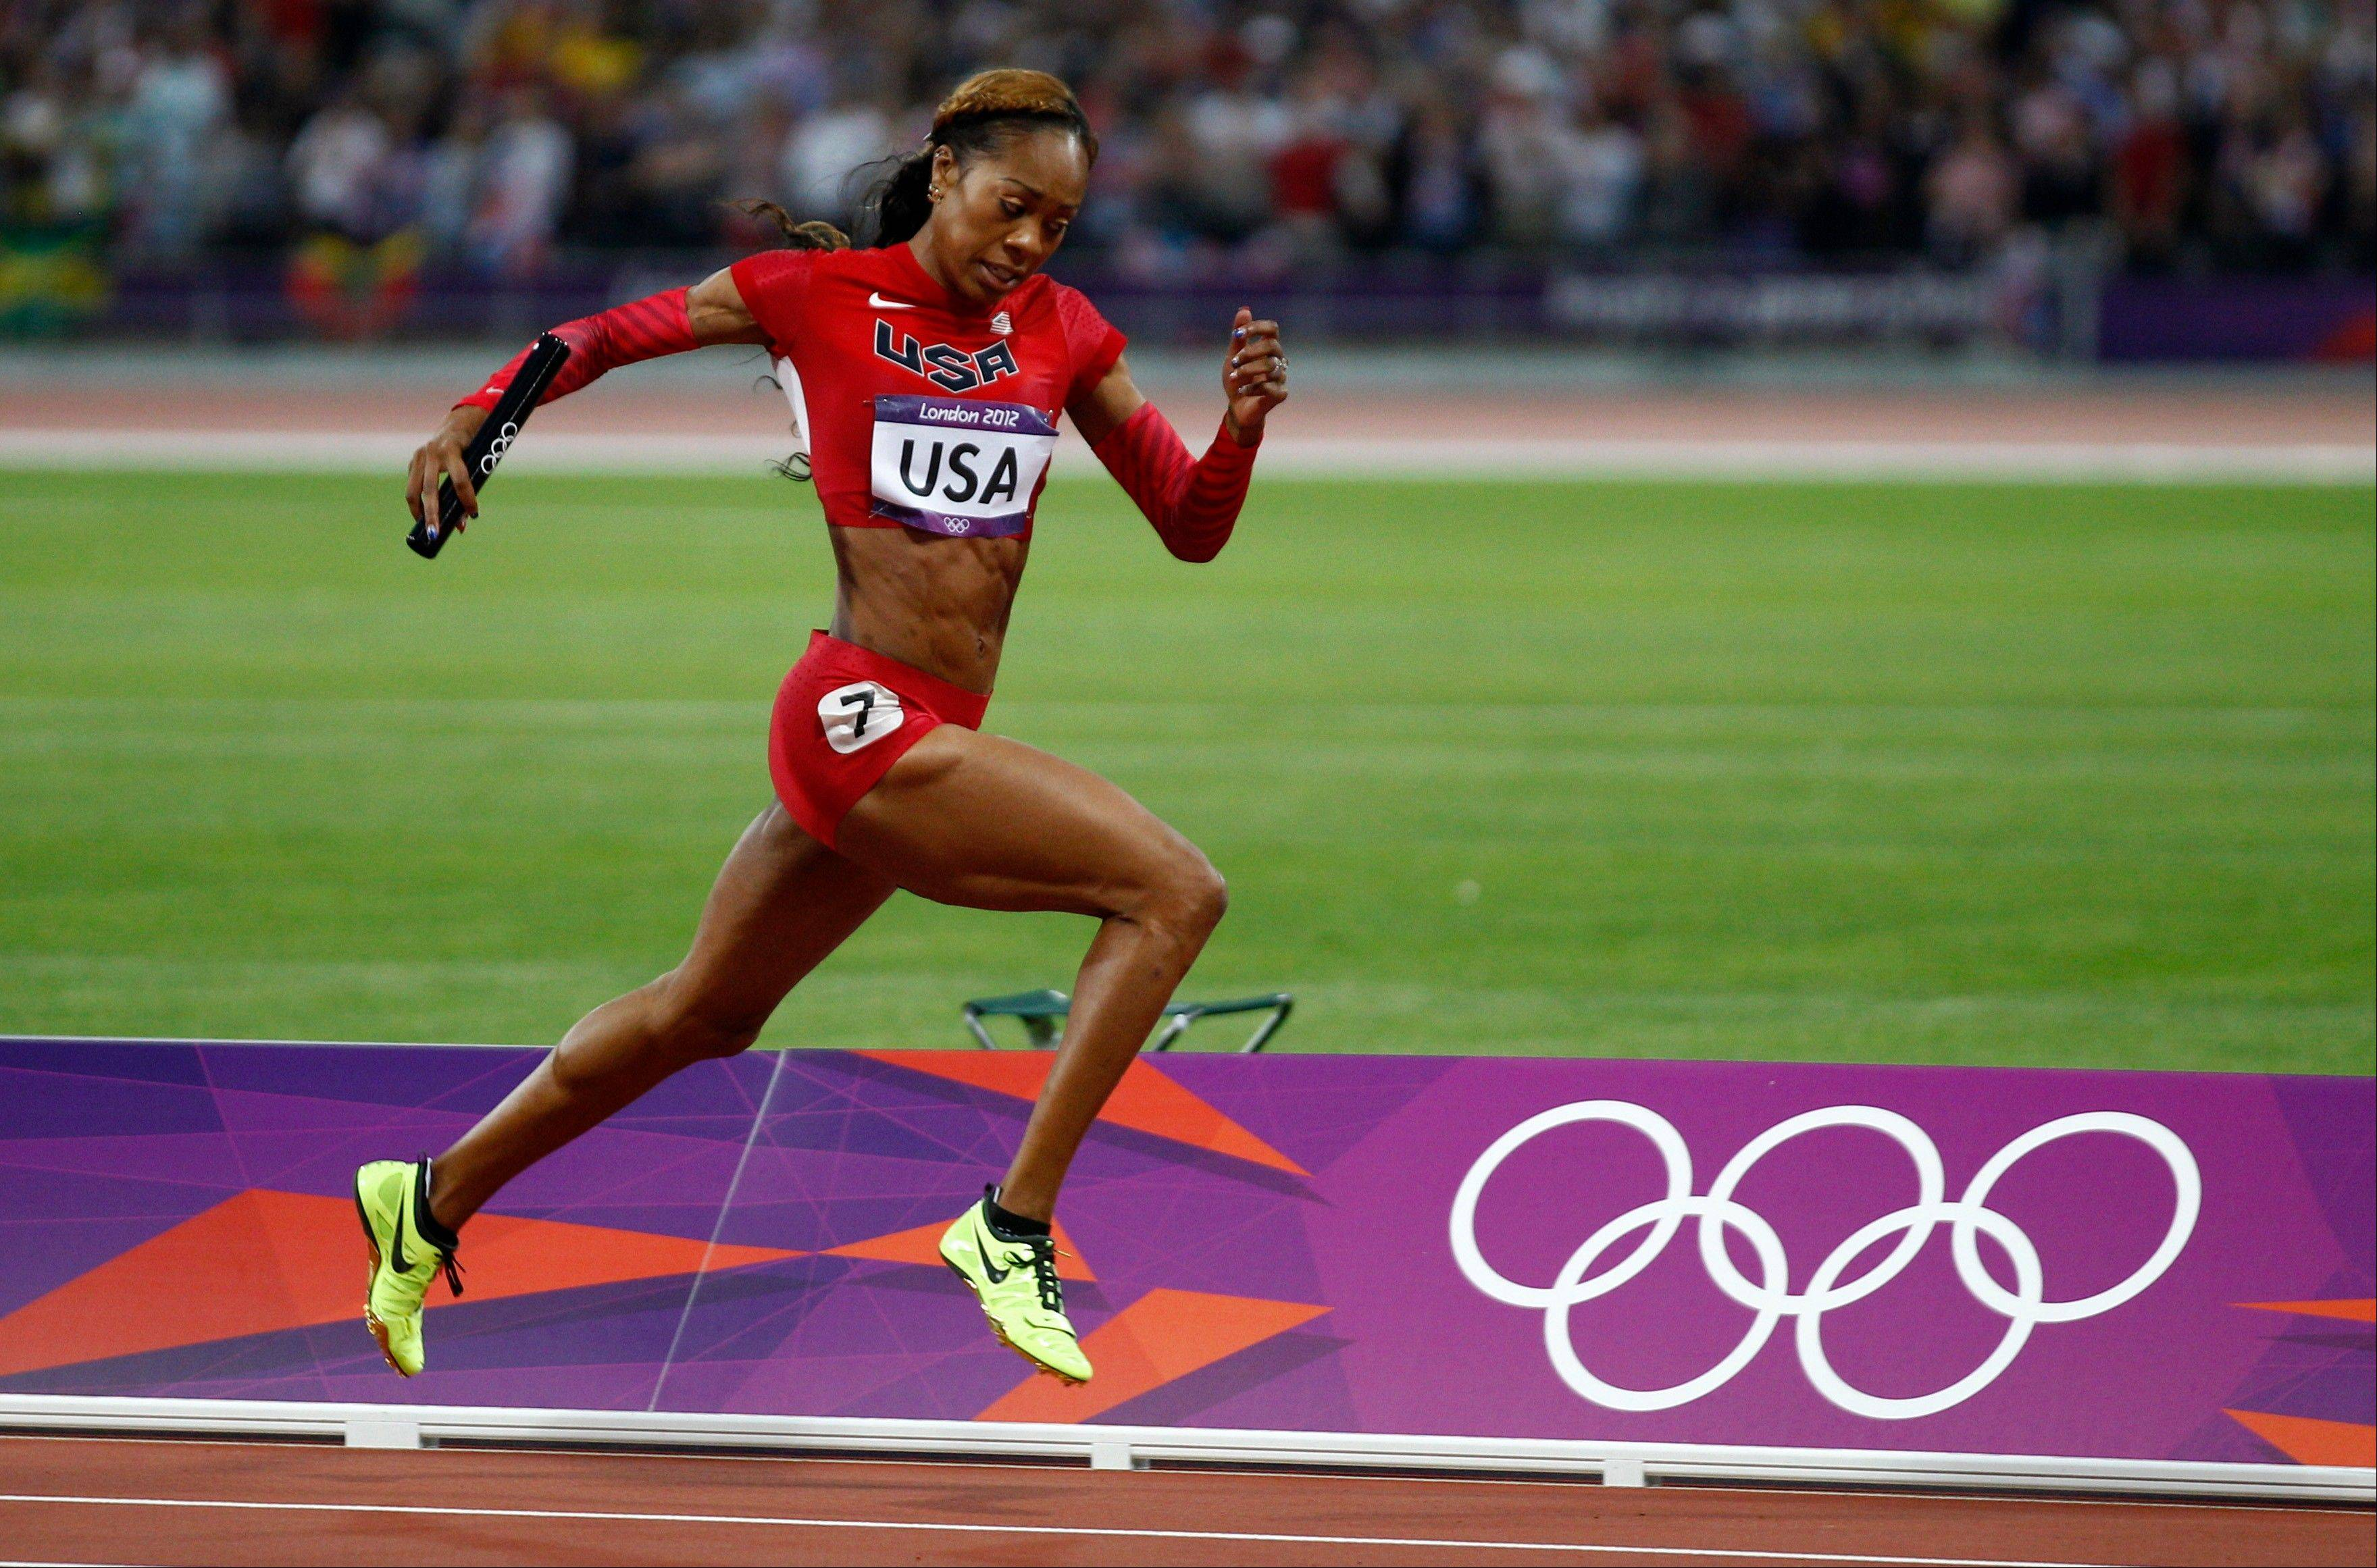 United States' Sanya Richards-Ross leads to win in the women's 4 x 400-meter relay during the athletics in the Olympic Park during the 2012 Summer Olympics, Saturday, Aug. 11, 2012, in London.